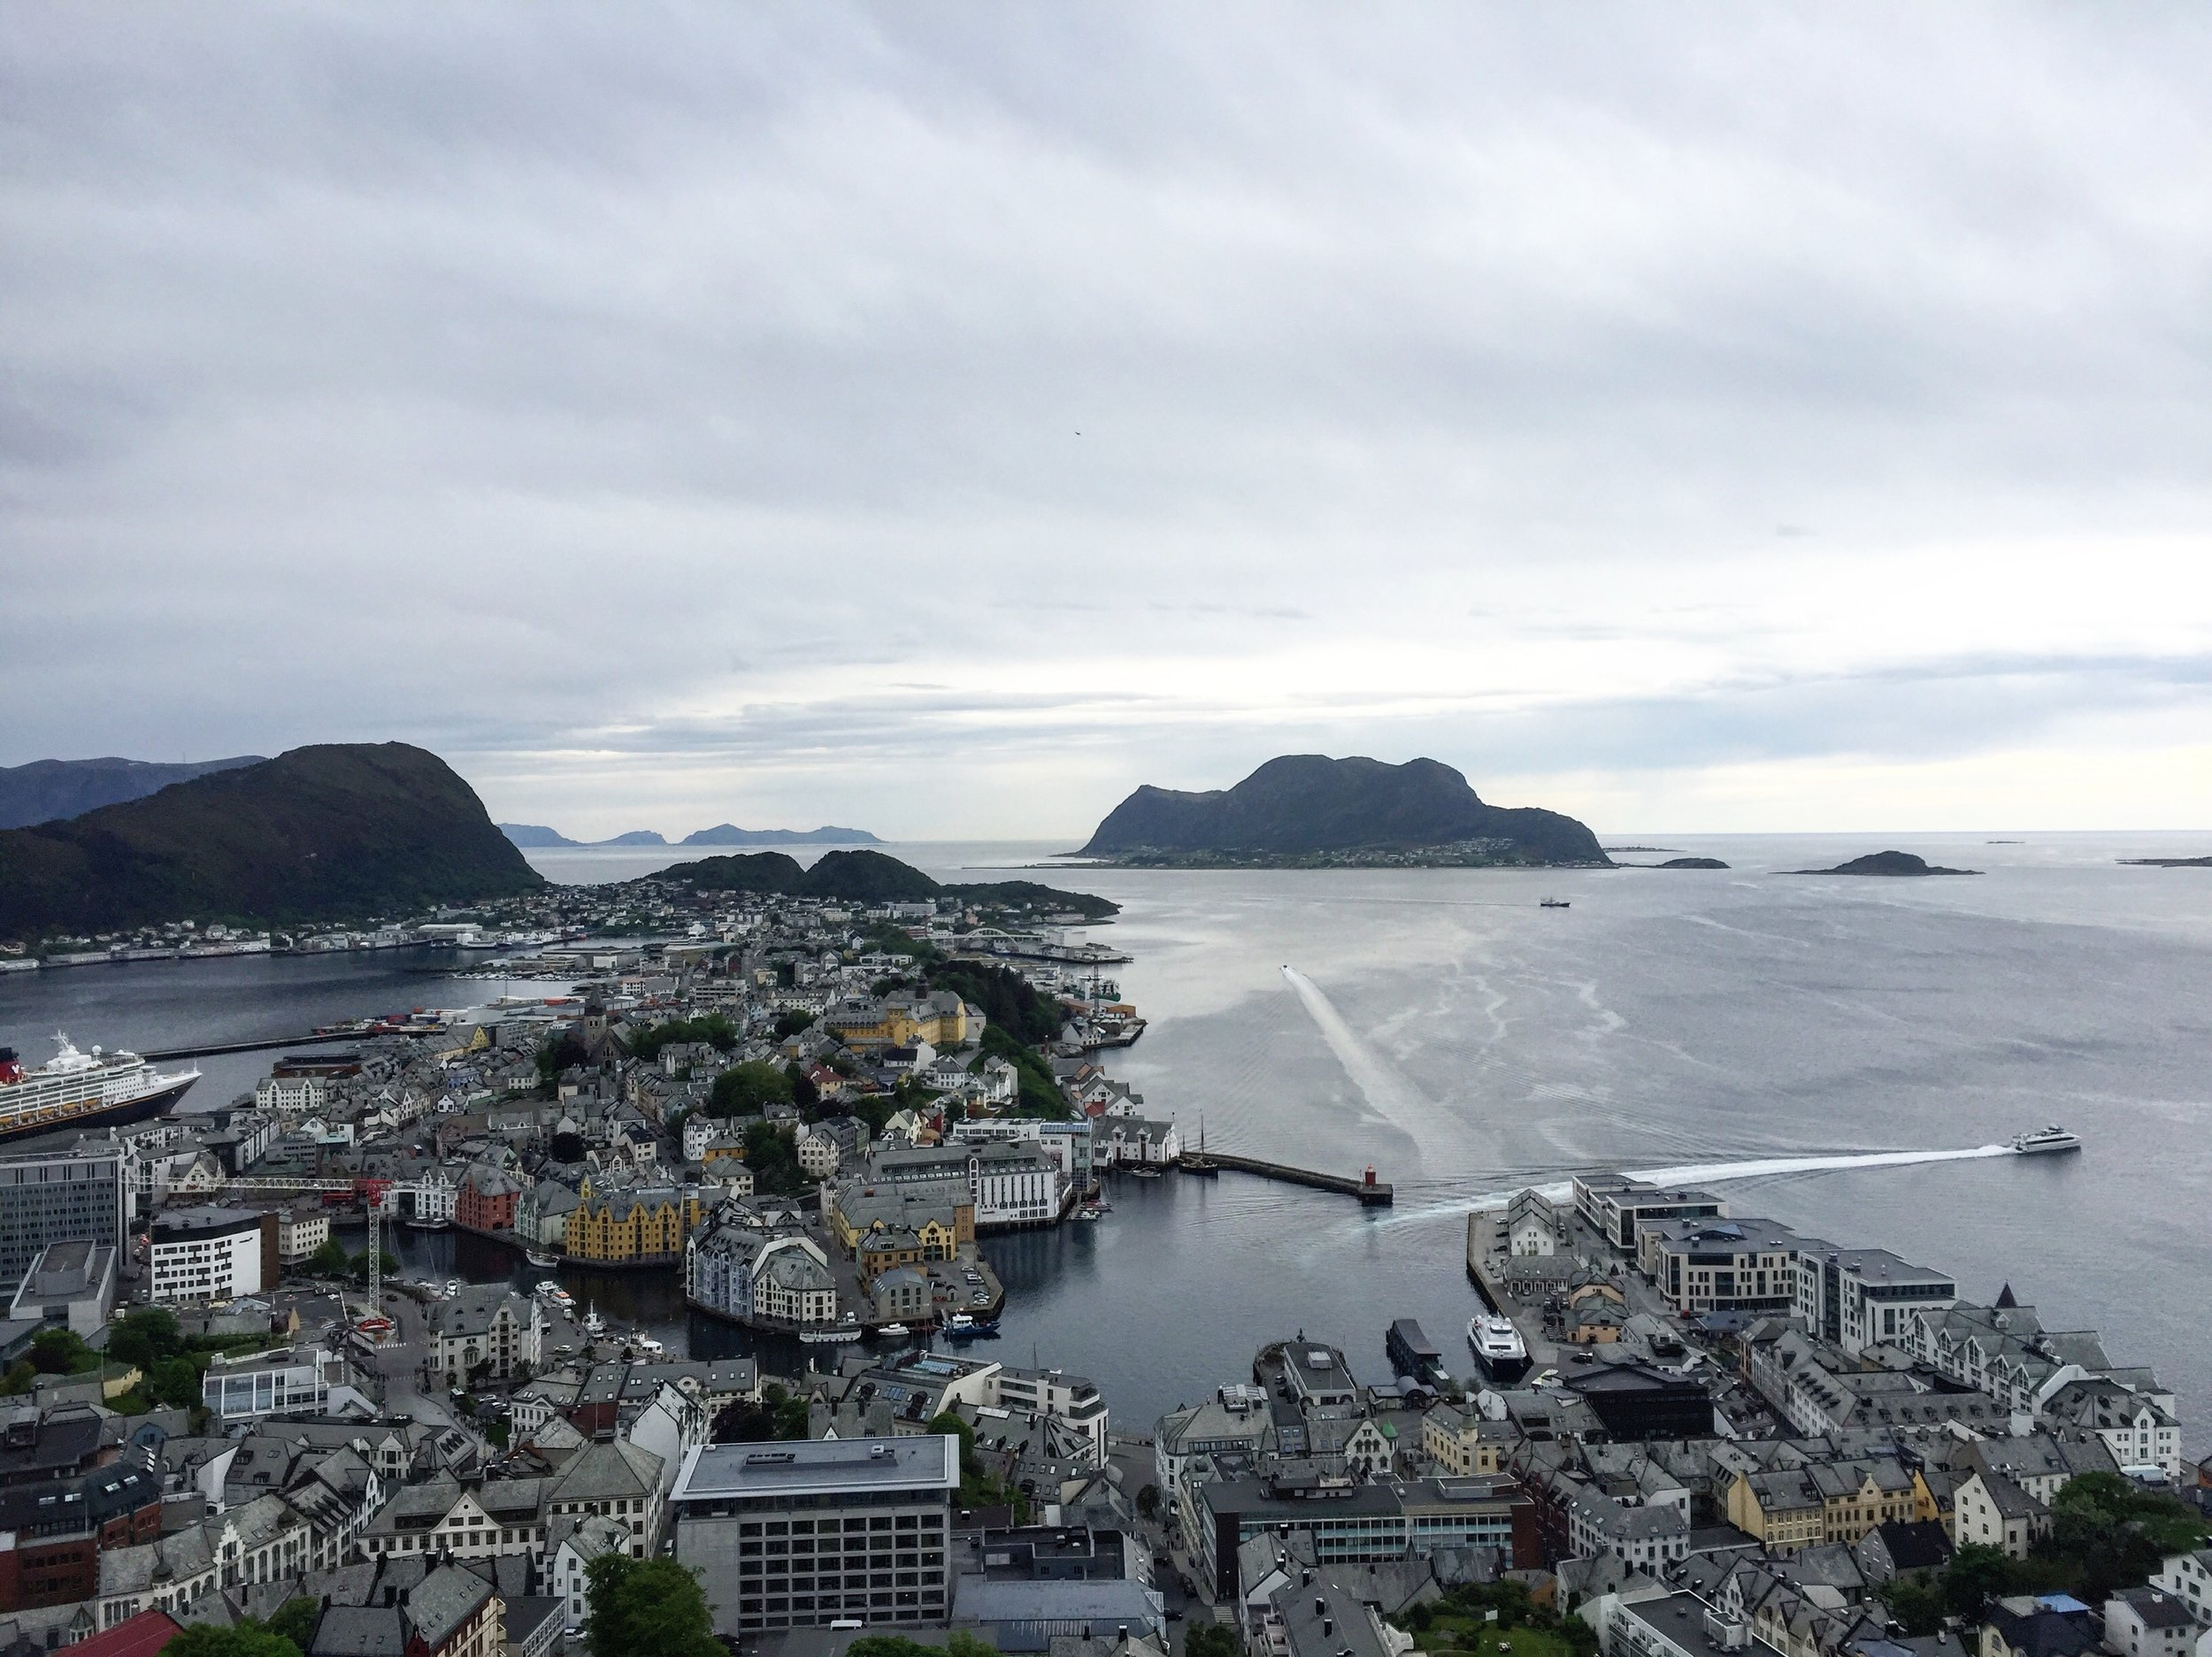 View of Ålesund city center from Aksla viewpoint, Norway.